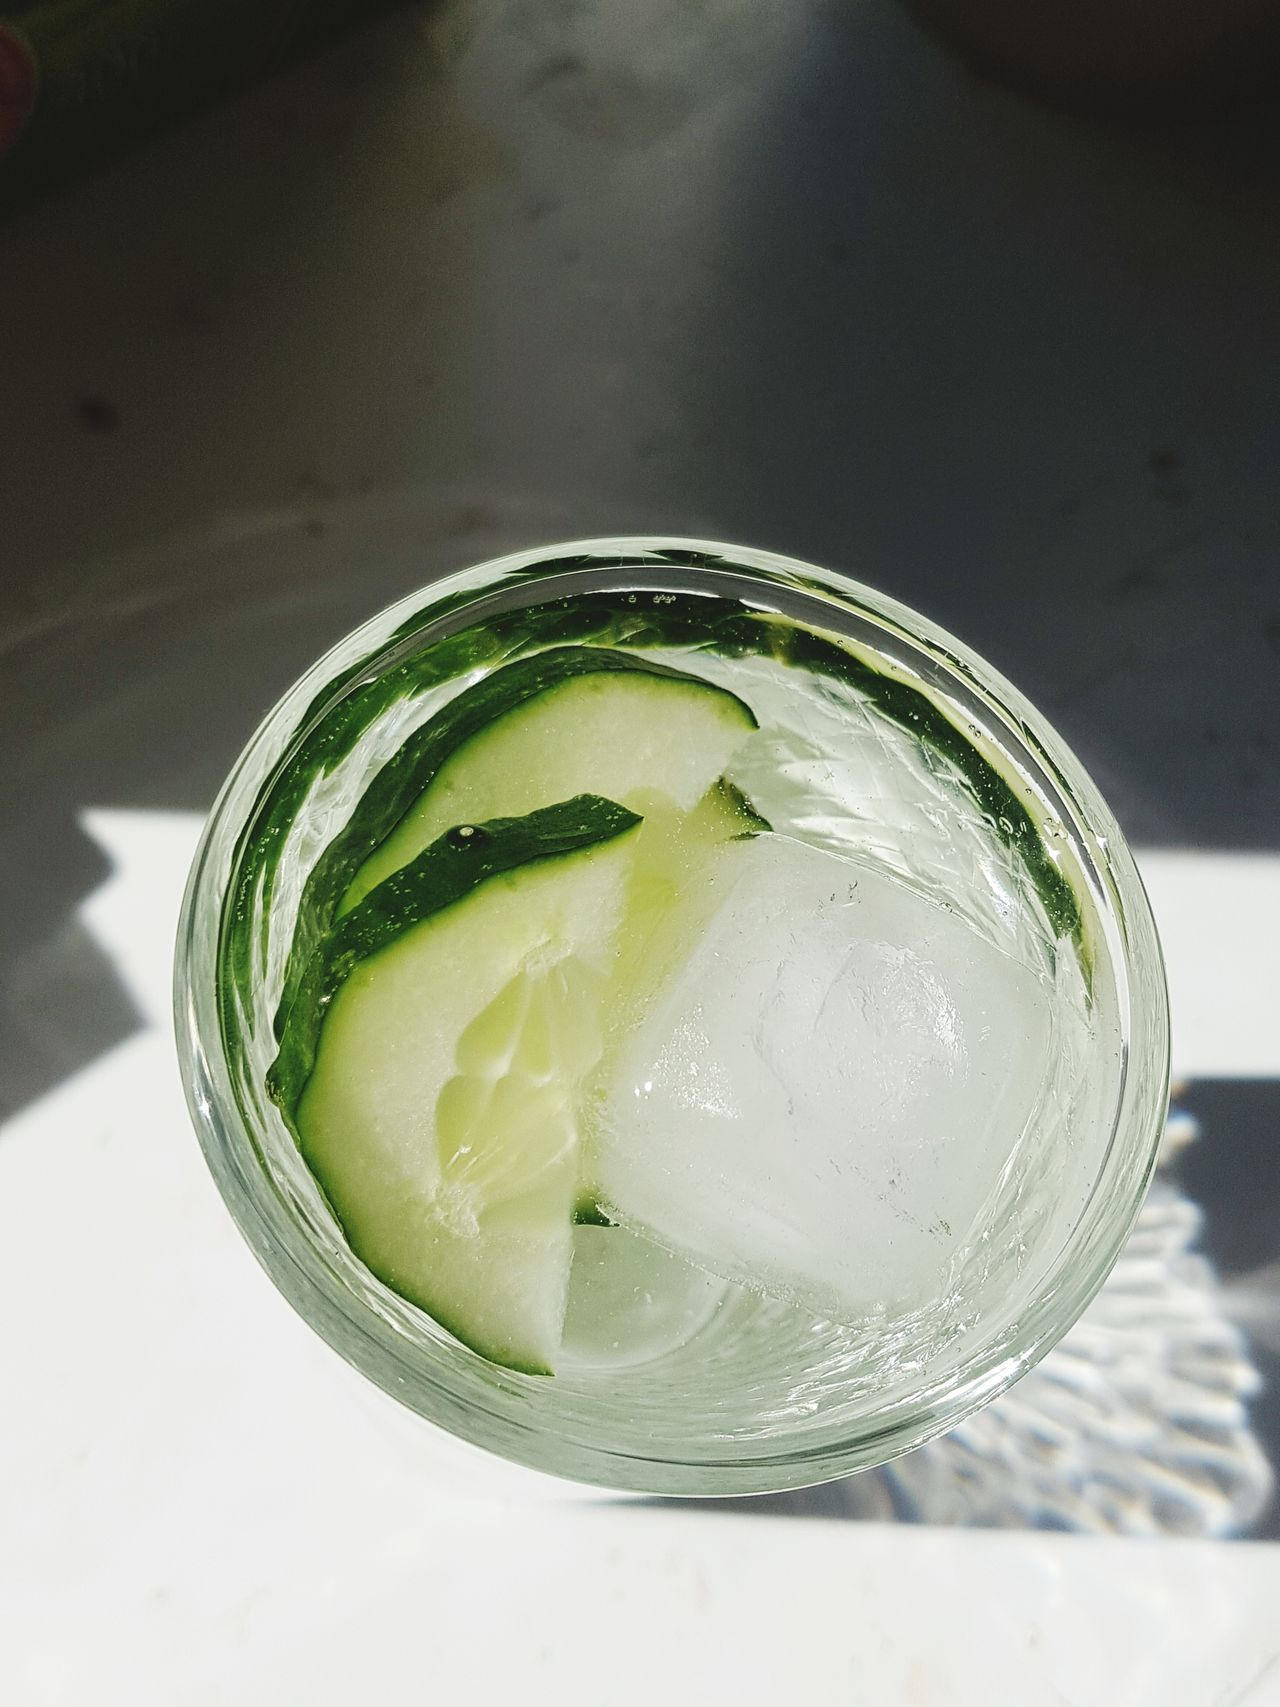 Drink Tonic Water Refreshment Drinking Glass Food And Drink GIN Freshness Cold Temperature SLICE Bubble Cocktail No People Close-up Indoors  Healthy Eating Ice Cube Lime Citrus Fruit Mojito Alcohol Day One Person Atmospheric Mood Art Is Everywhere Veganfoodporn